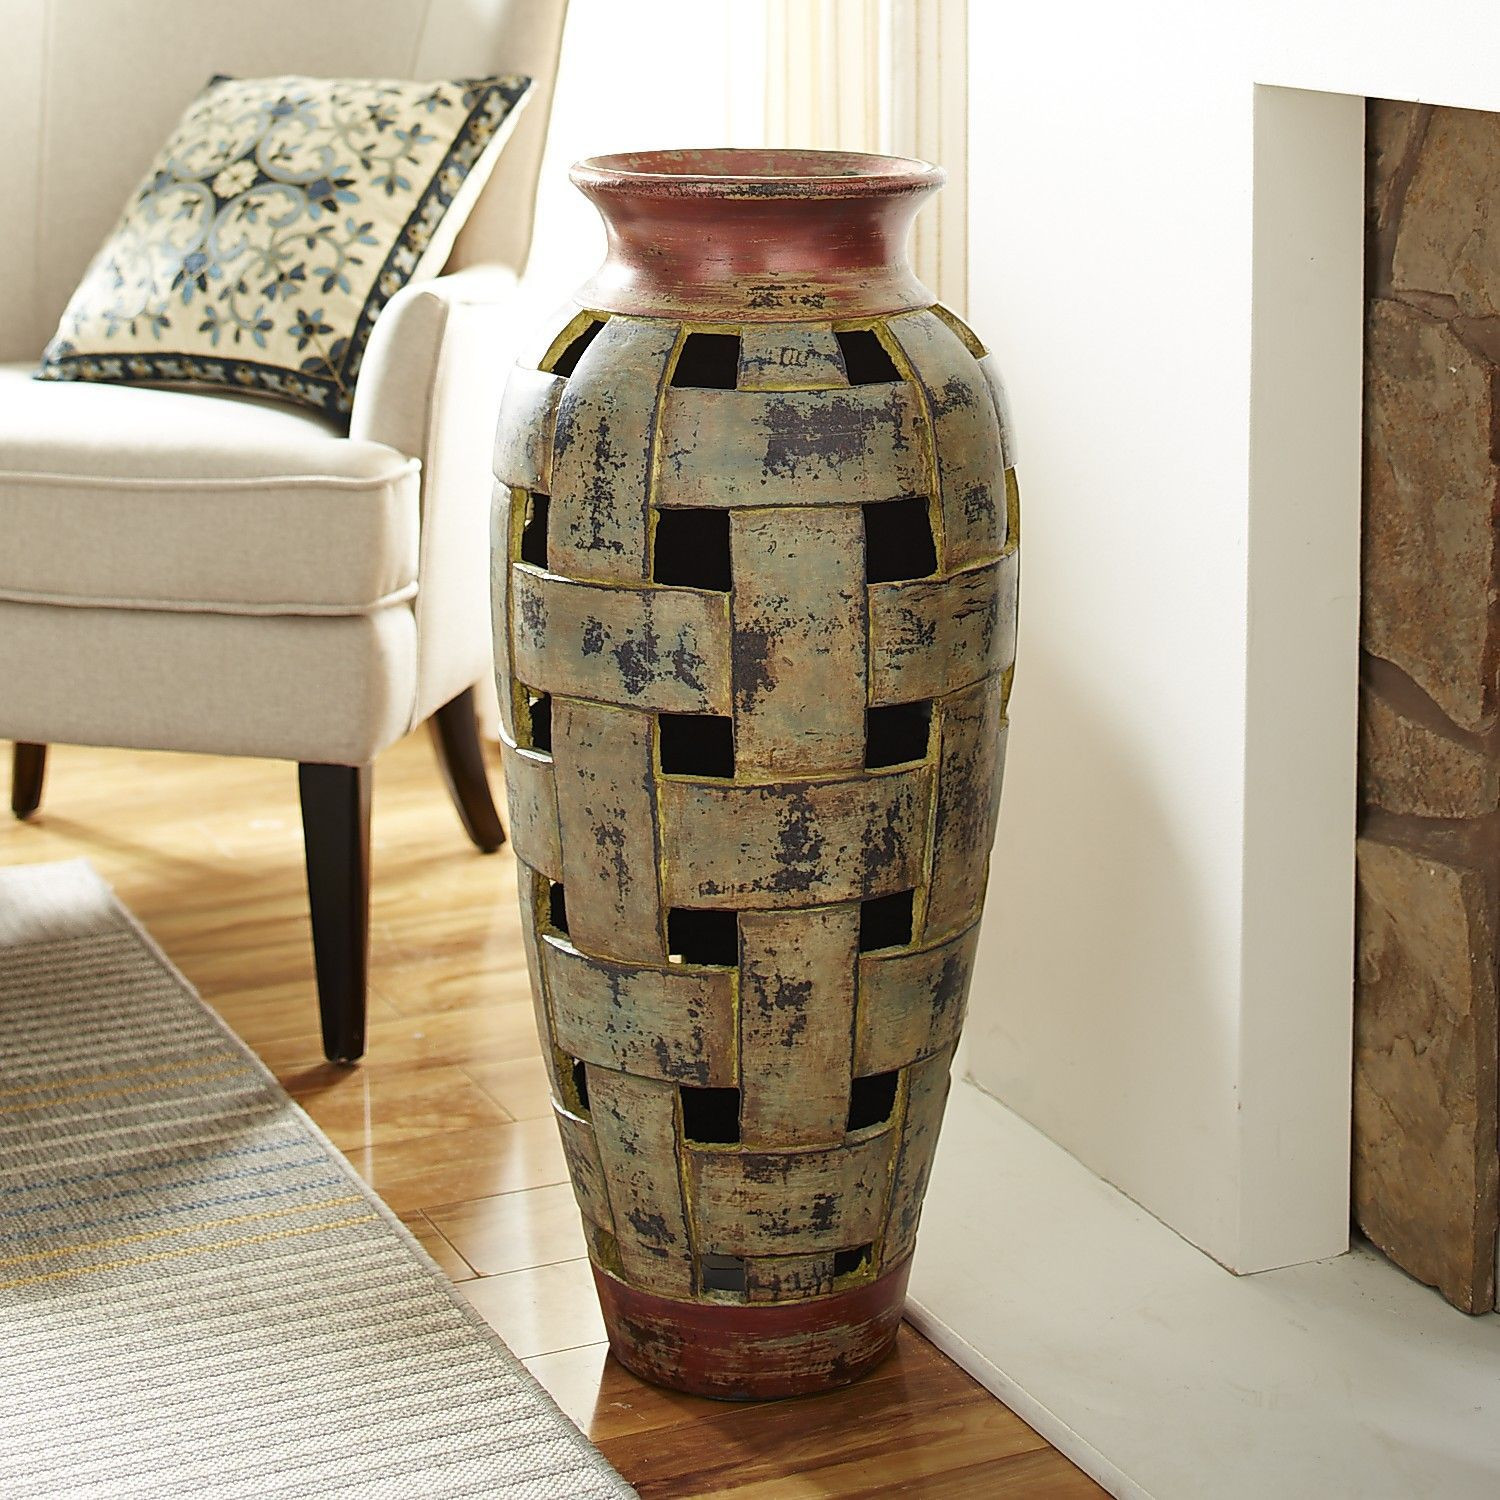 Terracotta Clay Vase Of Terracotta Open Weave Floor Vase Products Pinterest Open Weave Intended for Terracotta Open Weave Floor Vase Green